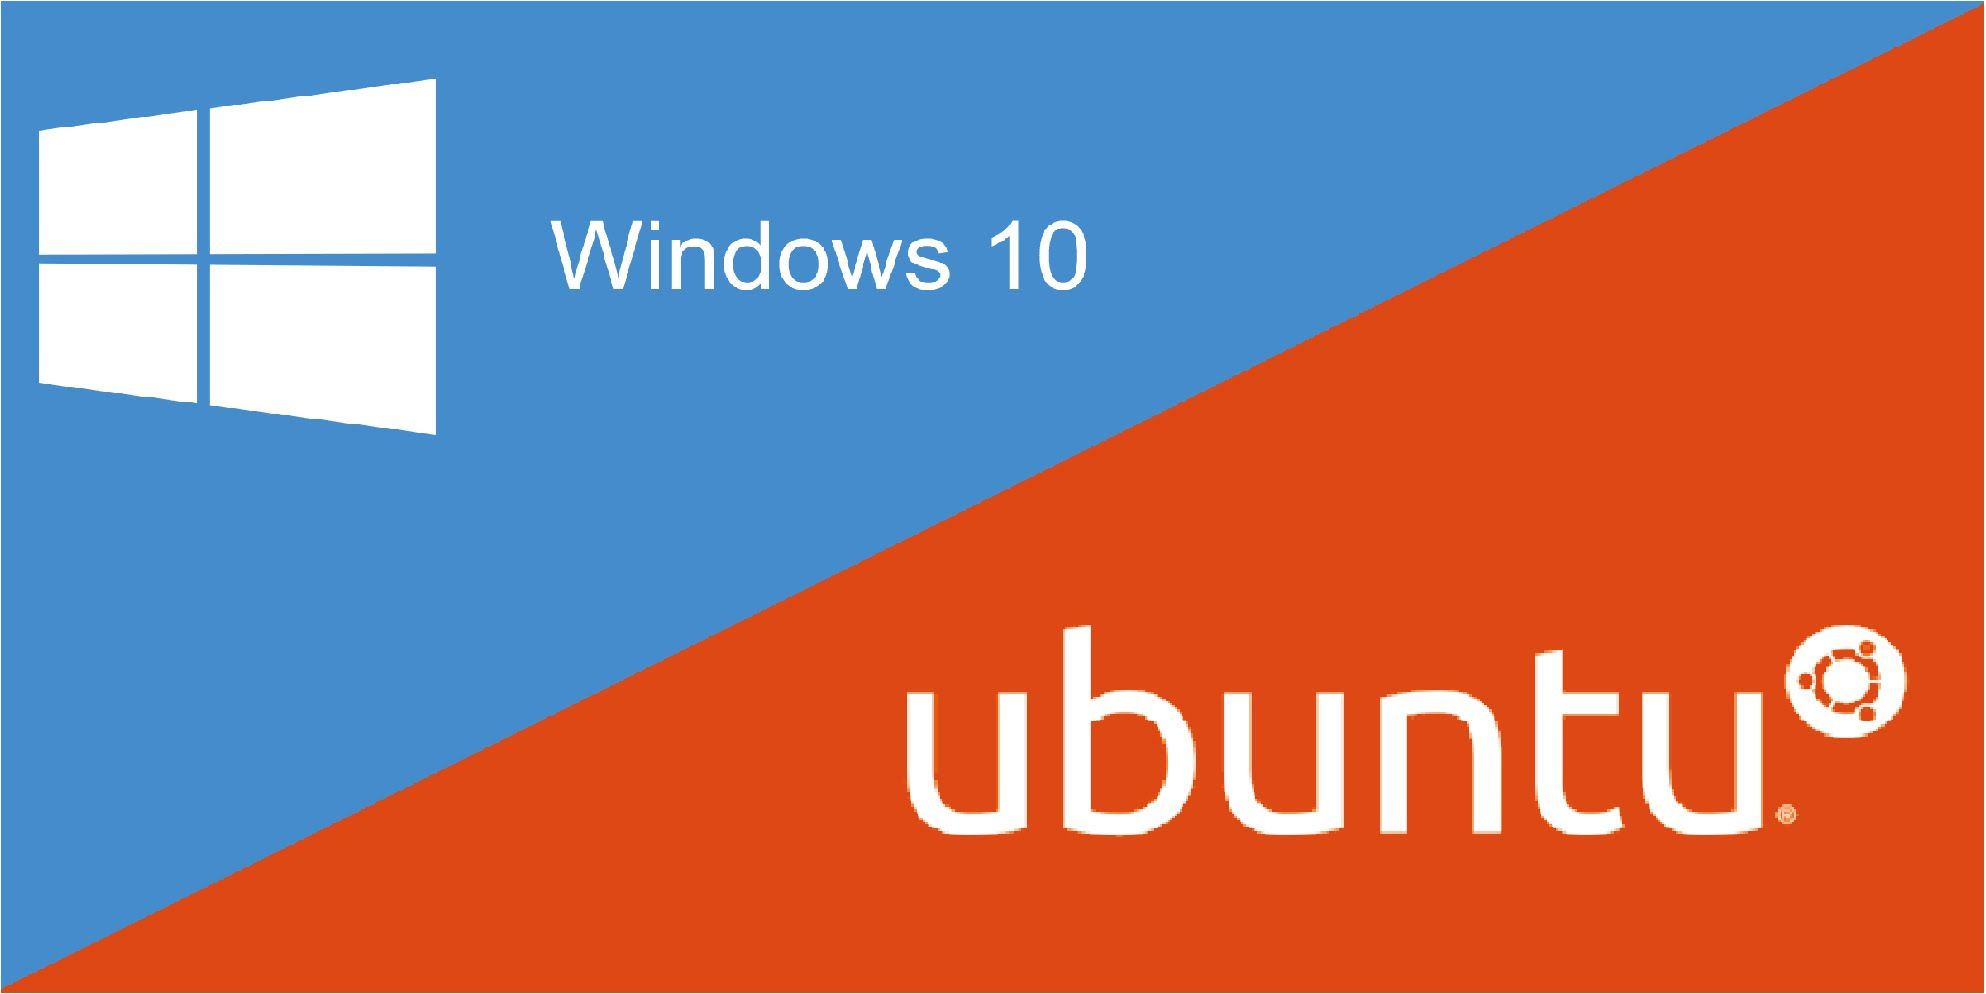 ubuntu is now available for windows 10 on the windows store